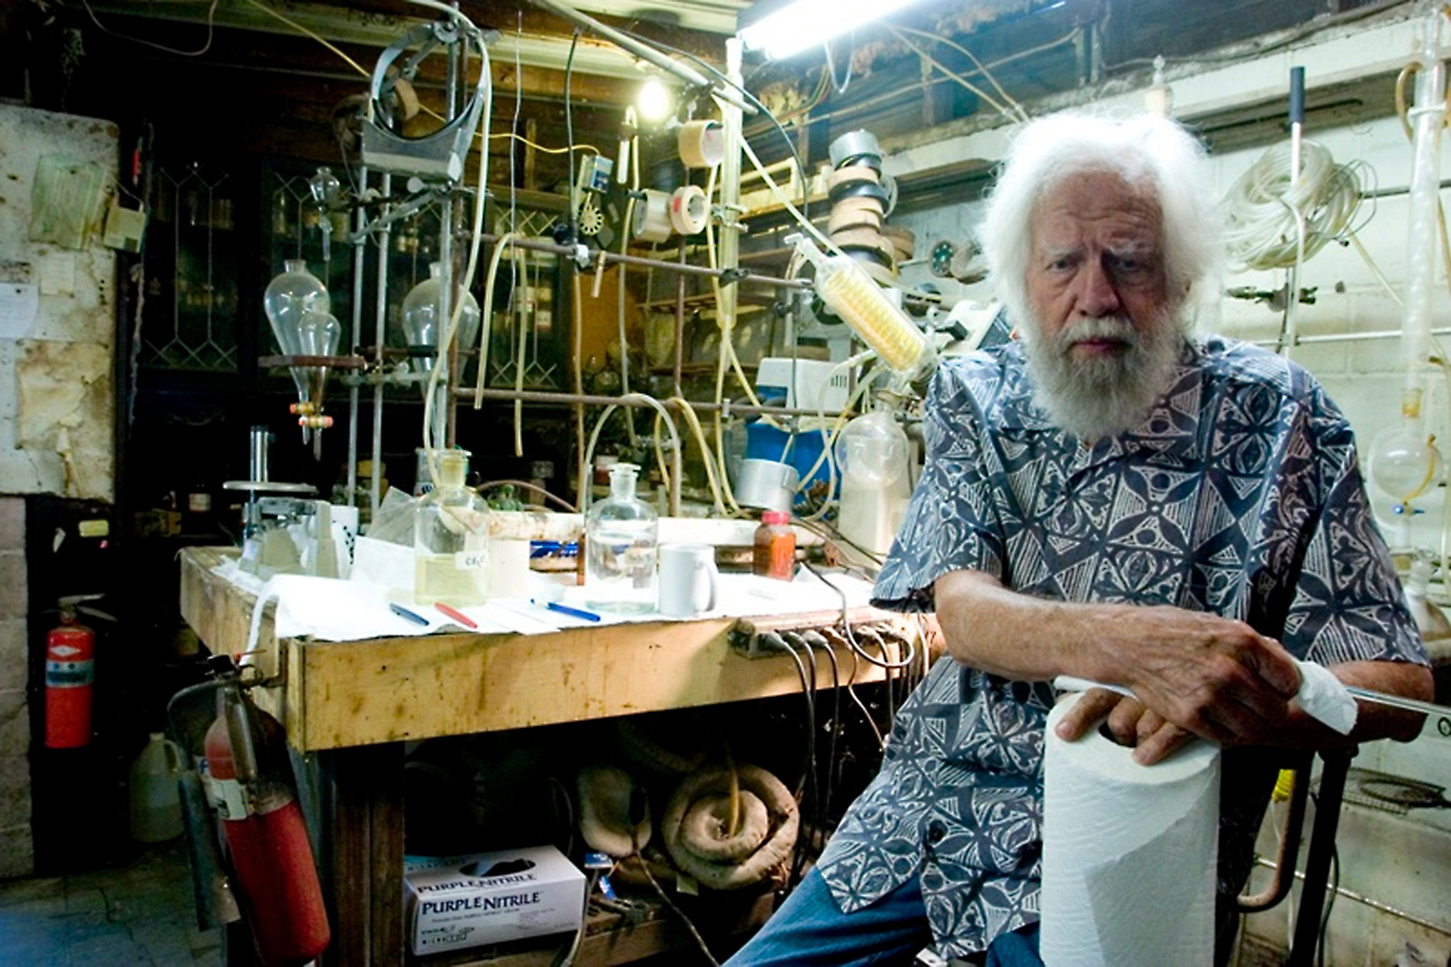 alexander shulgin An excerpt from chemist alexander shulgin's book pihkal (phenethylamines i have known and loved.